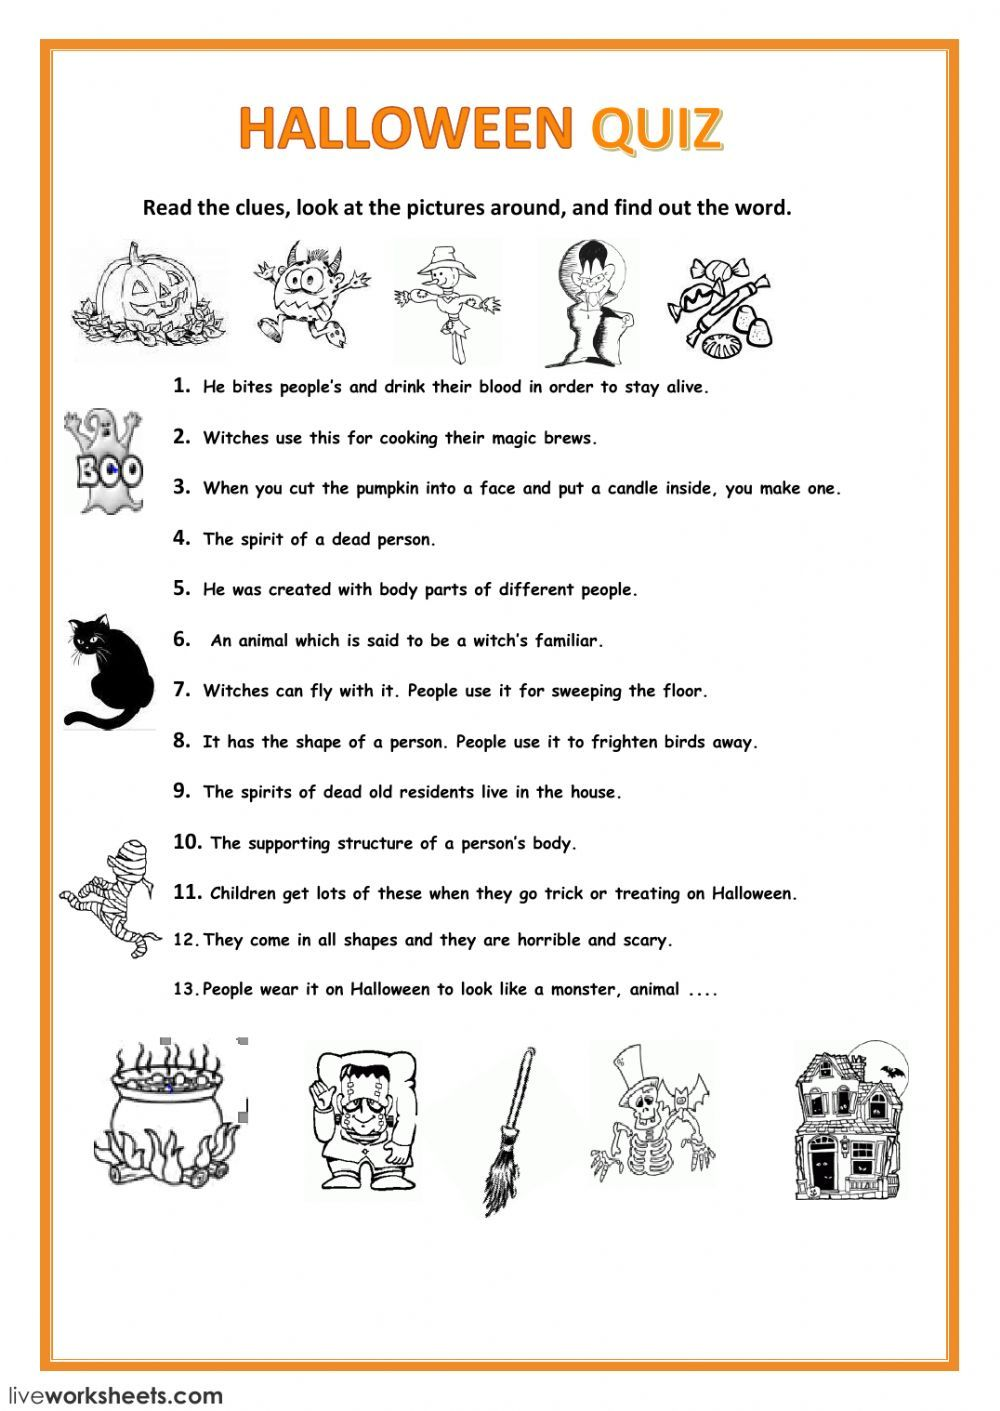 Halloween interactive and downloadable worksheet. You can